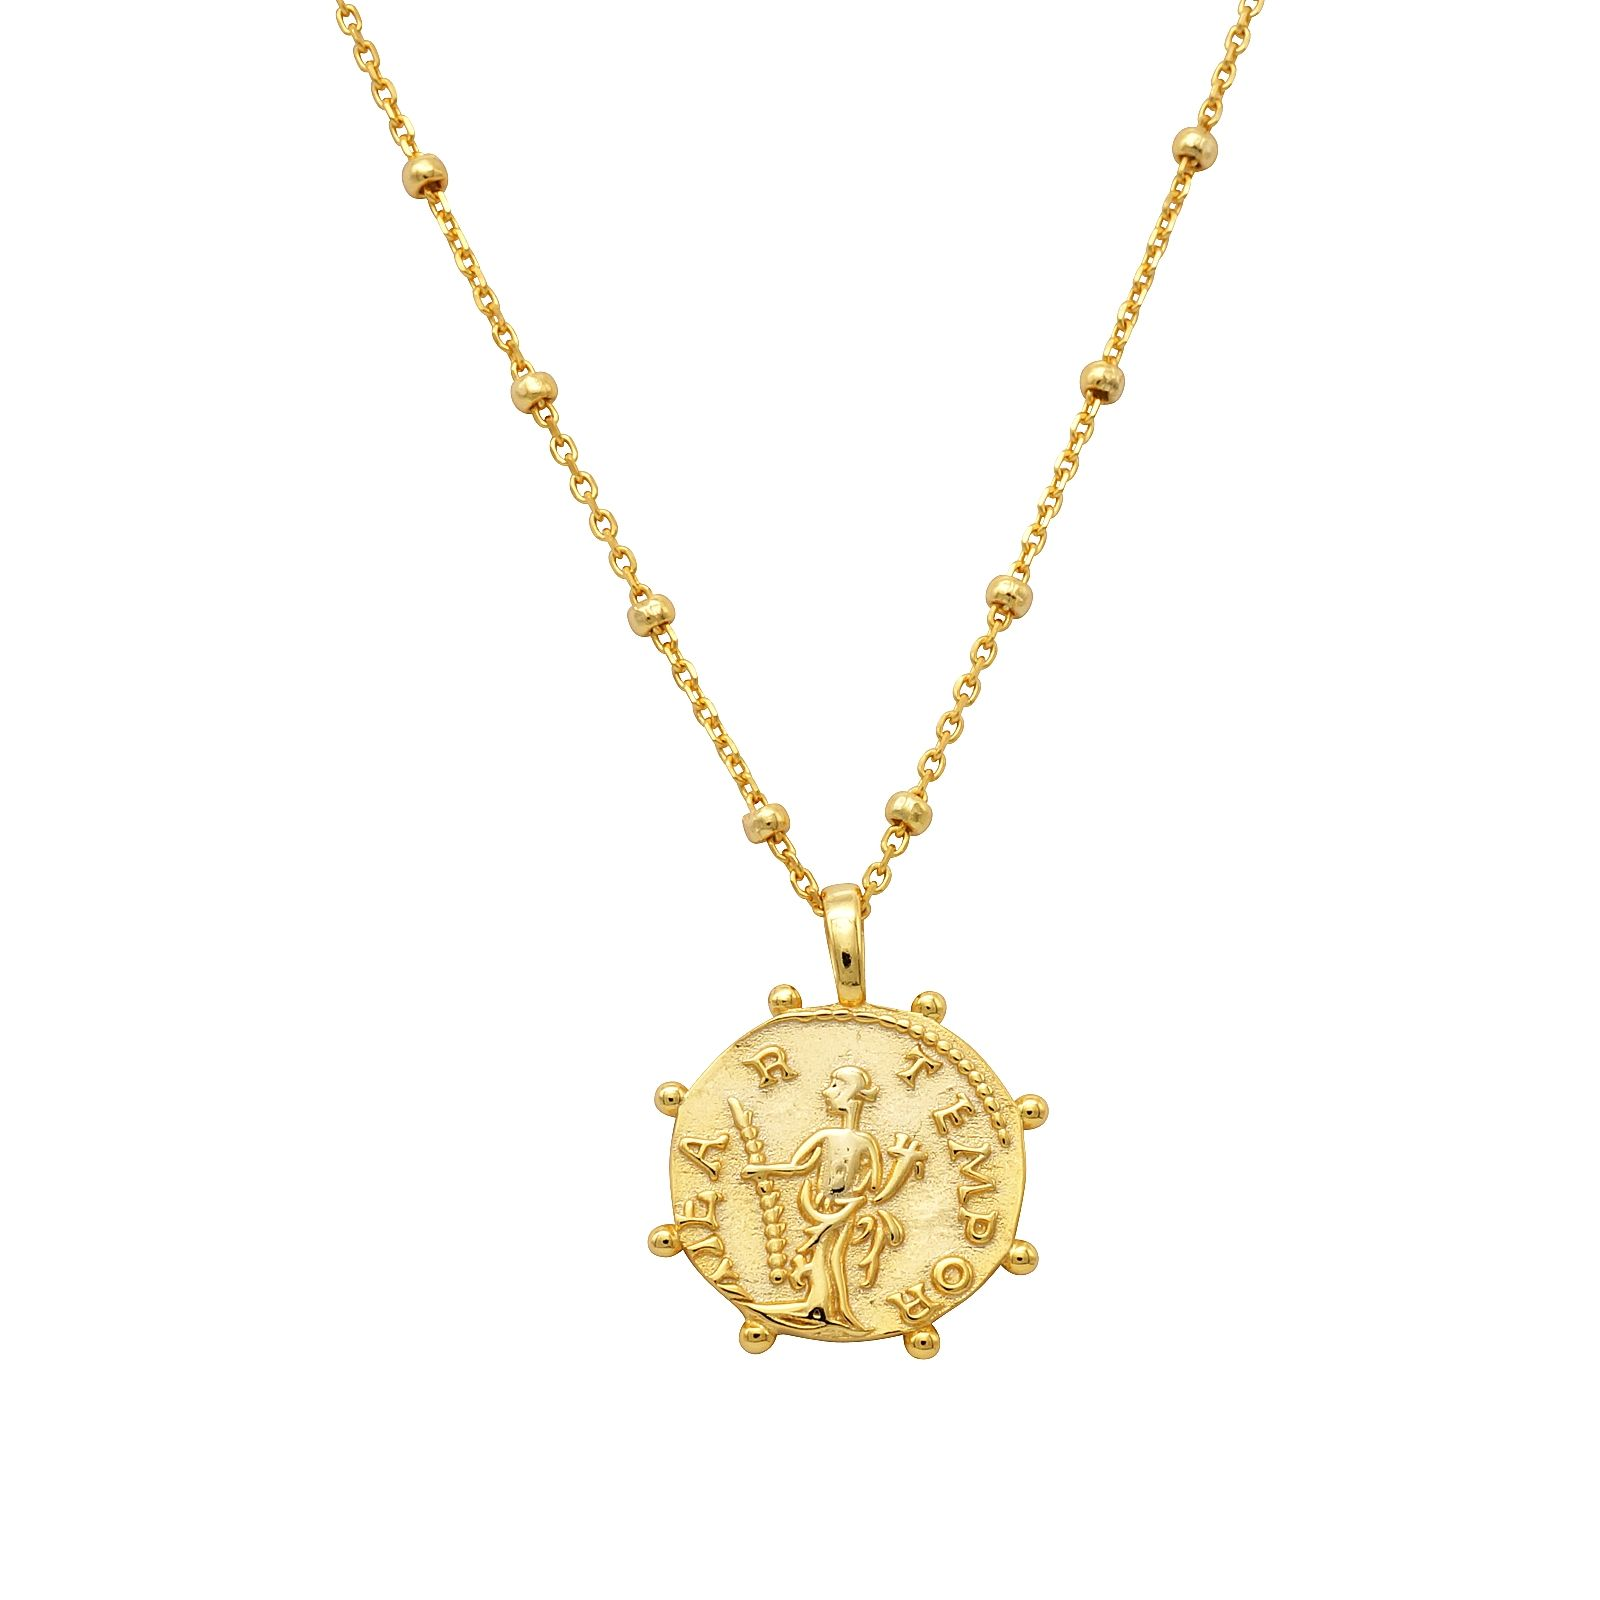 Roman Pendant Necklace Inspired By An Ancient Roman Coin This Amulet Design Necklace With The Beaded Chain And Wheel Necklace Coin Jewelry Delicate Necklace